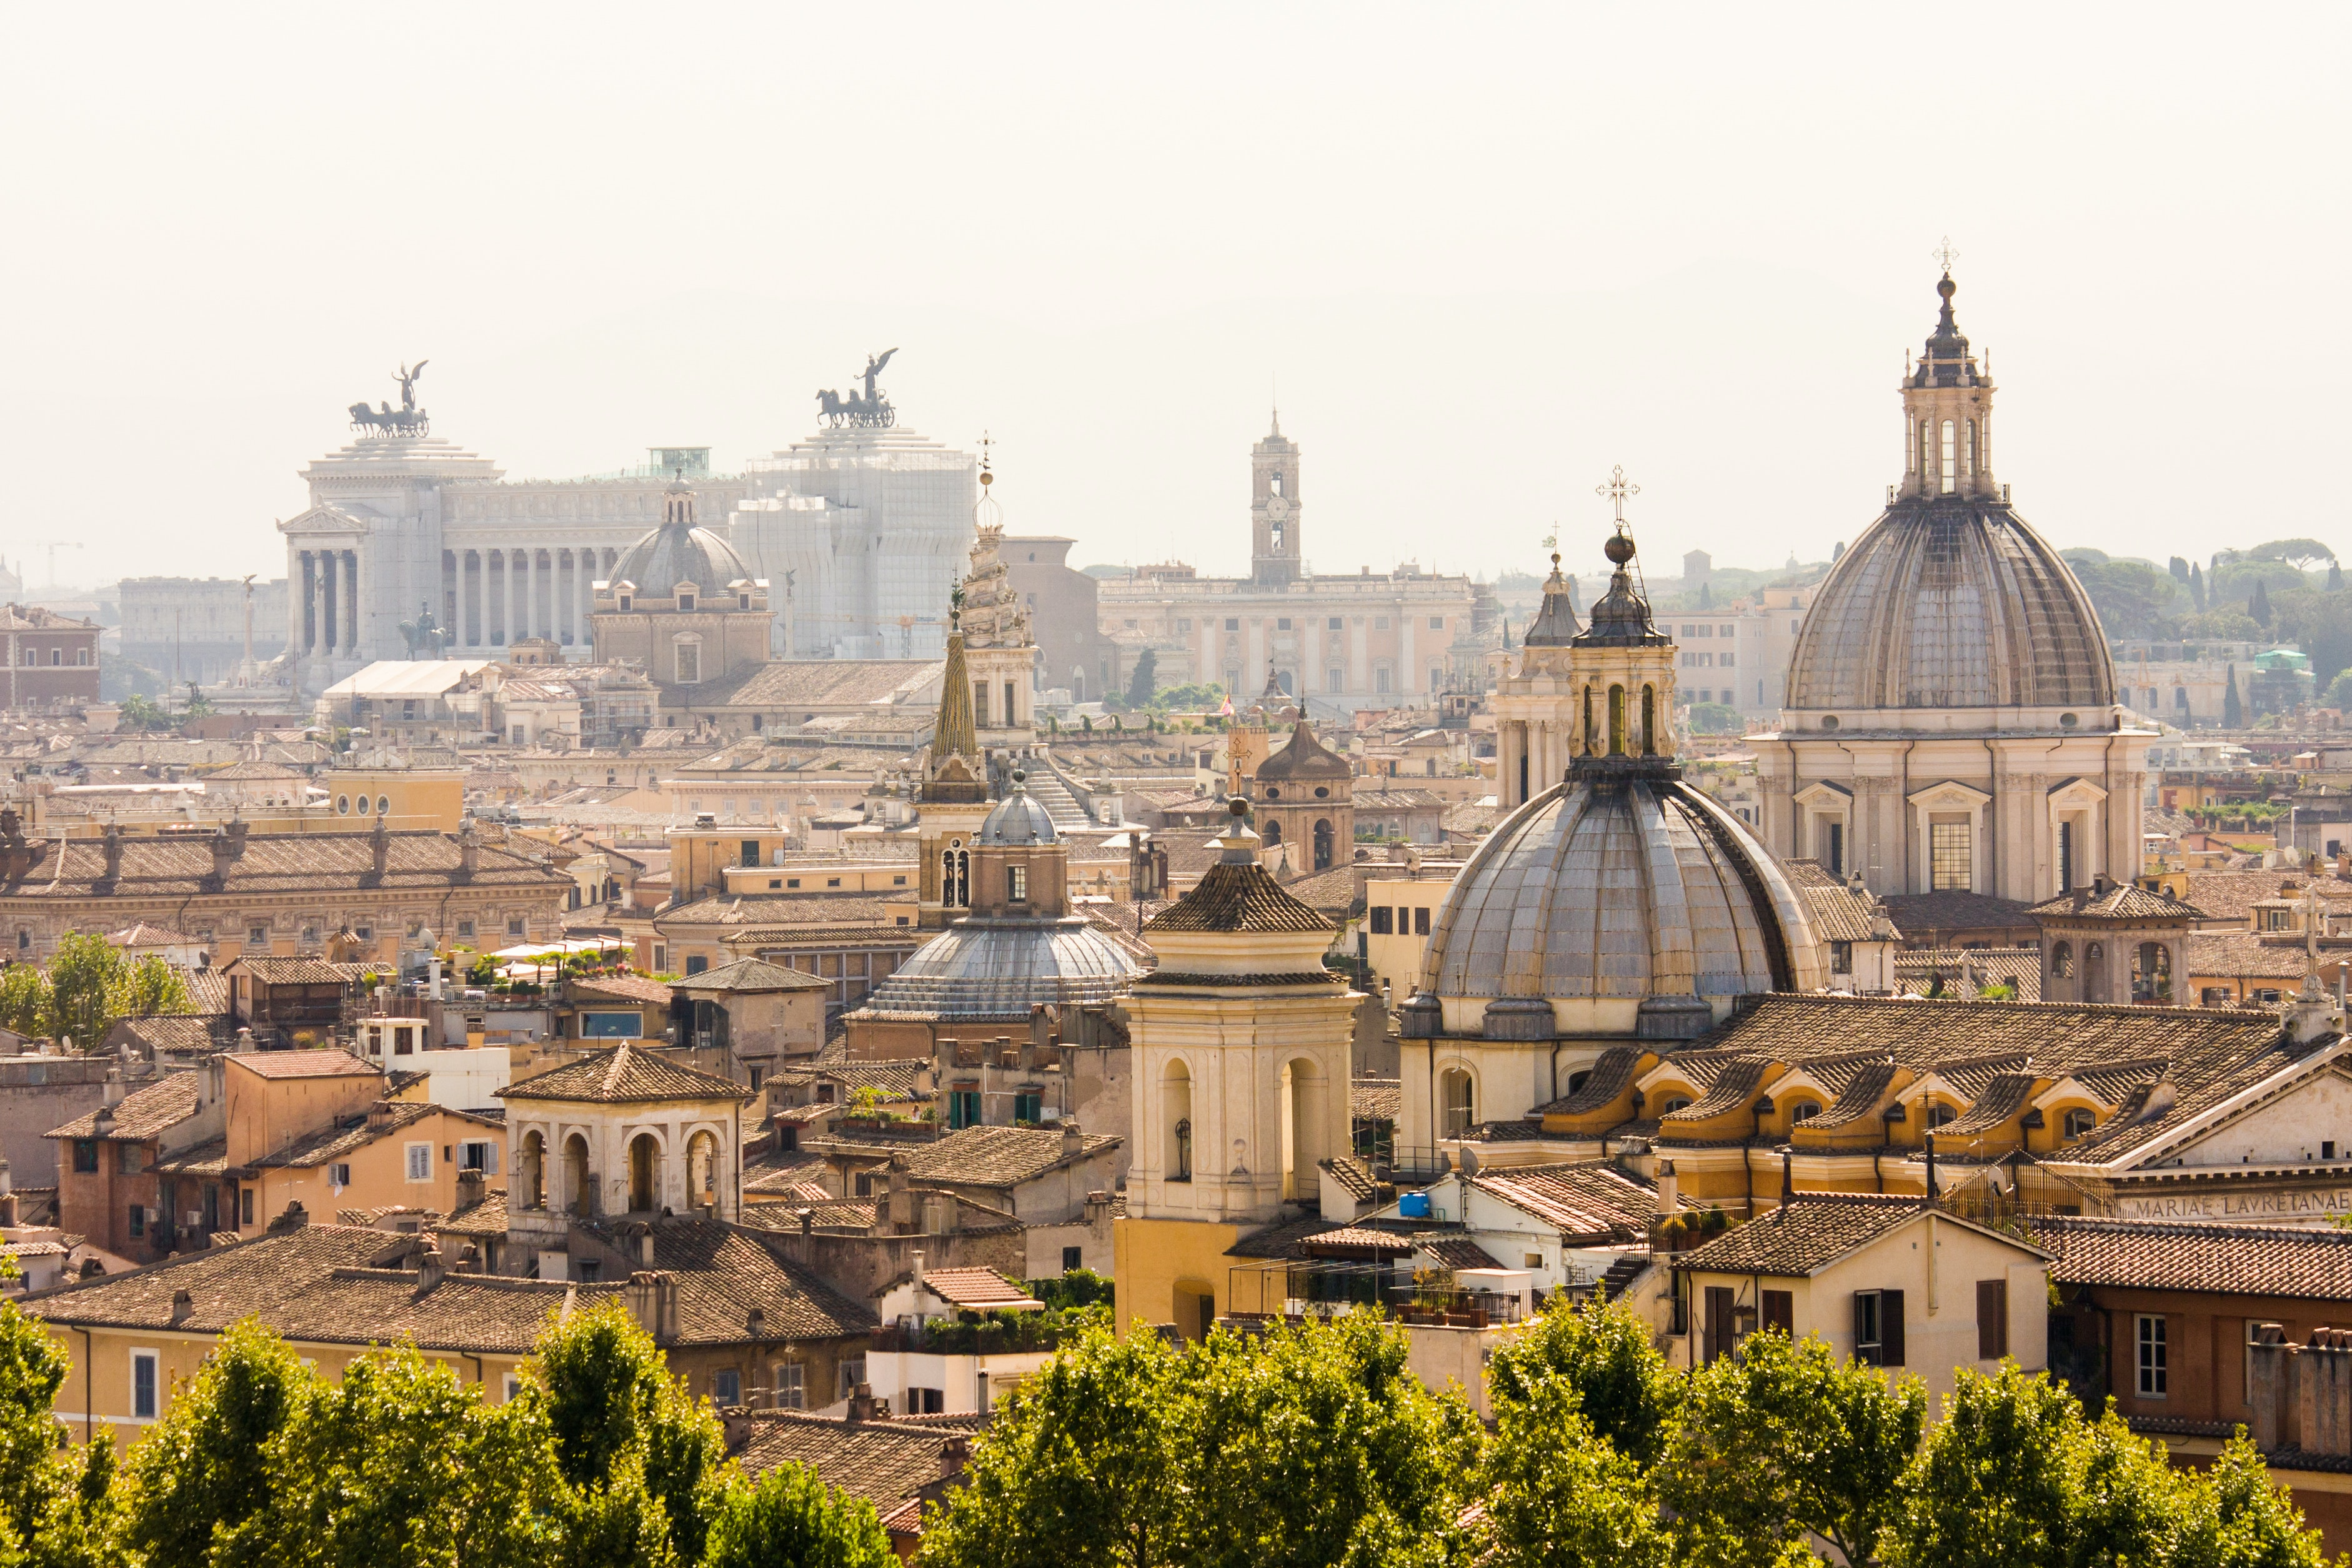 Rome and Vatican City allow visitors to connect with religion and culture both ancient and modern.